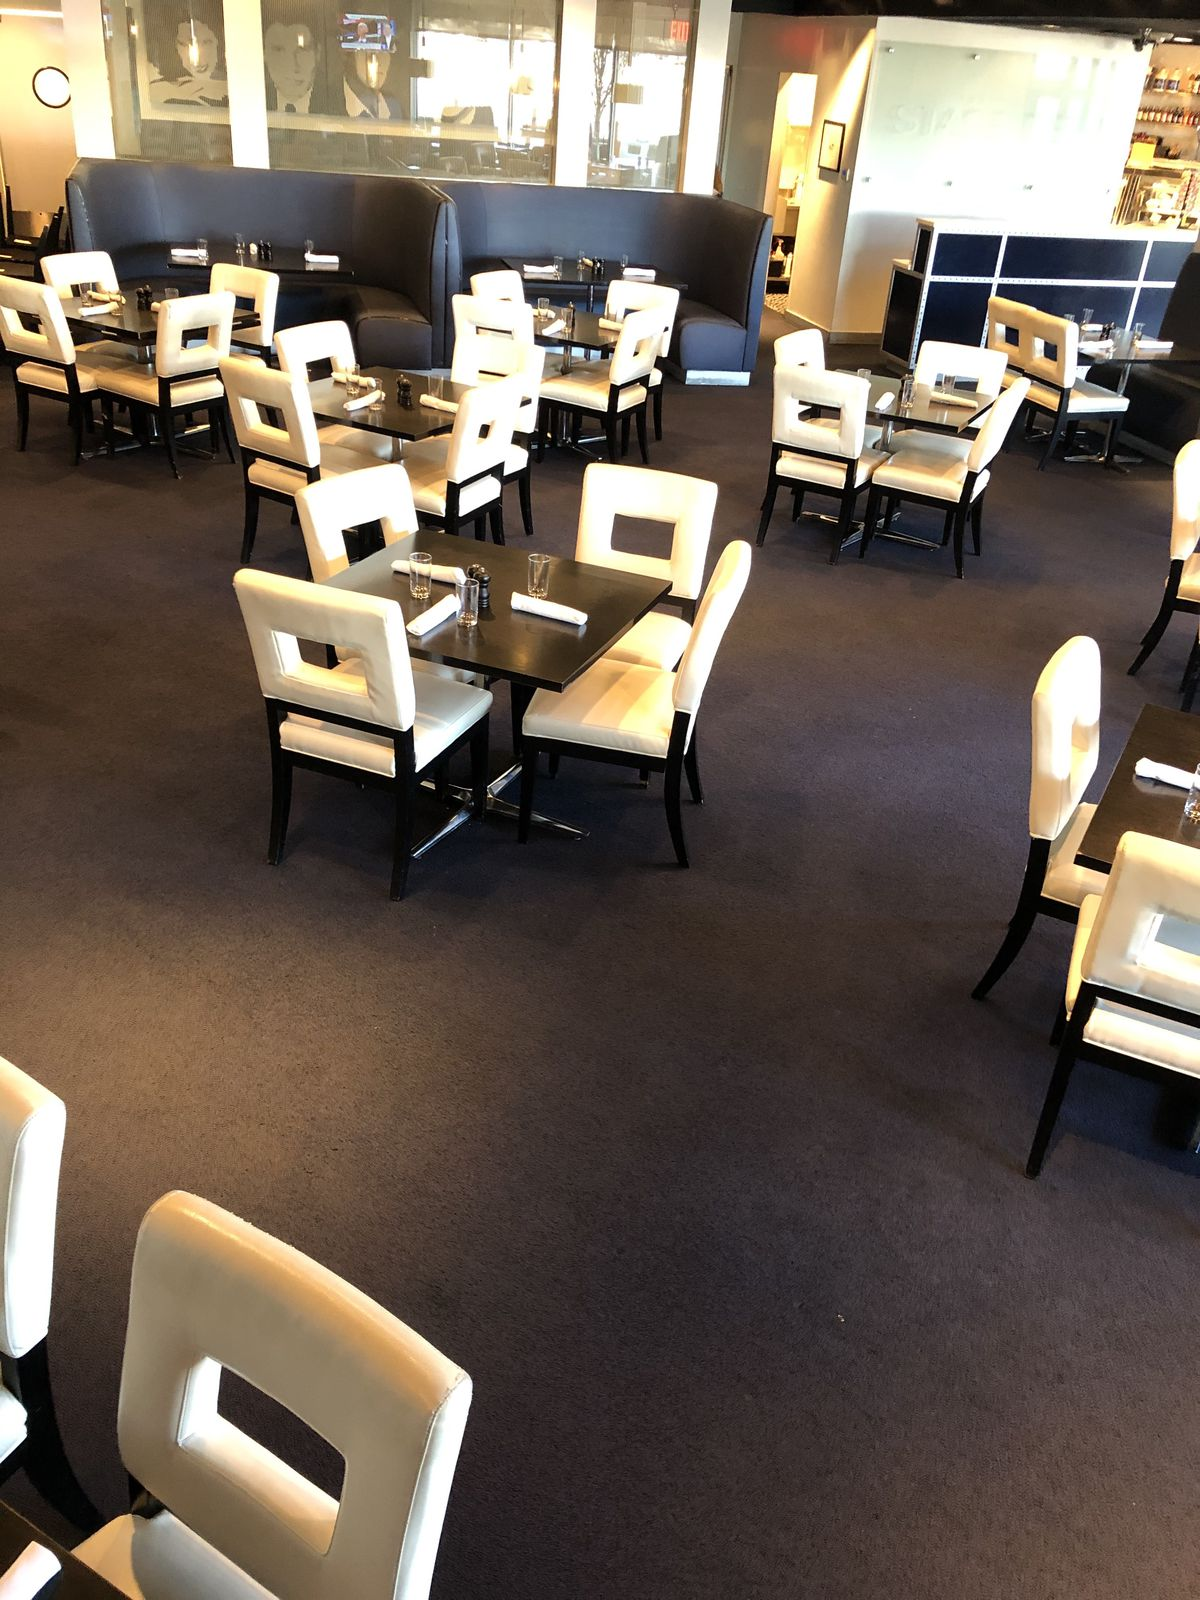 The dining room at stage deli has gray booths and white chairs. Everything is spread out due to reduced capacity.